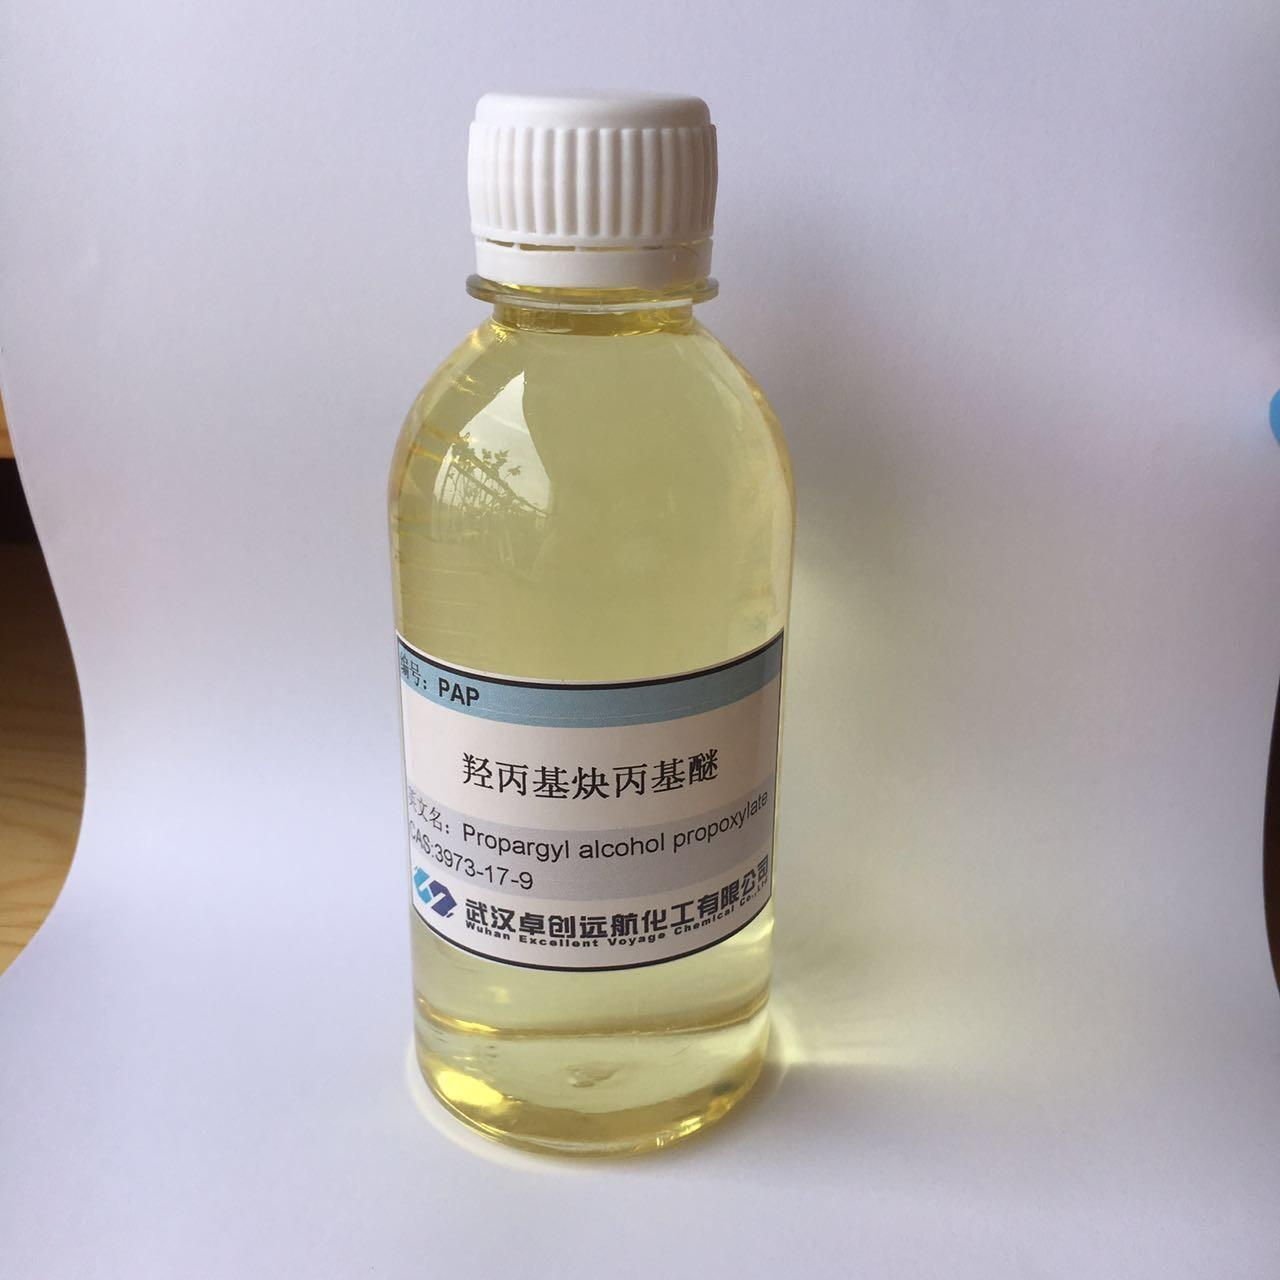 Cheap PAP(Propargyl alcohol propoxylate) 3973-17-9 Leveling agent , brightening agent Nickel Plating  low price high quality for sale